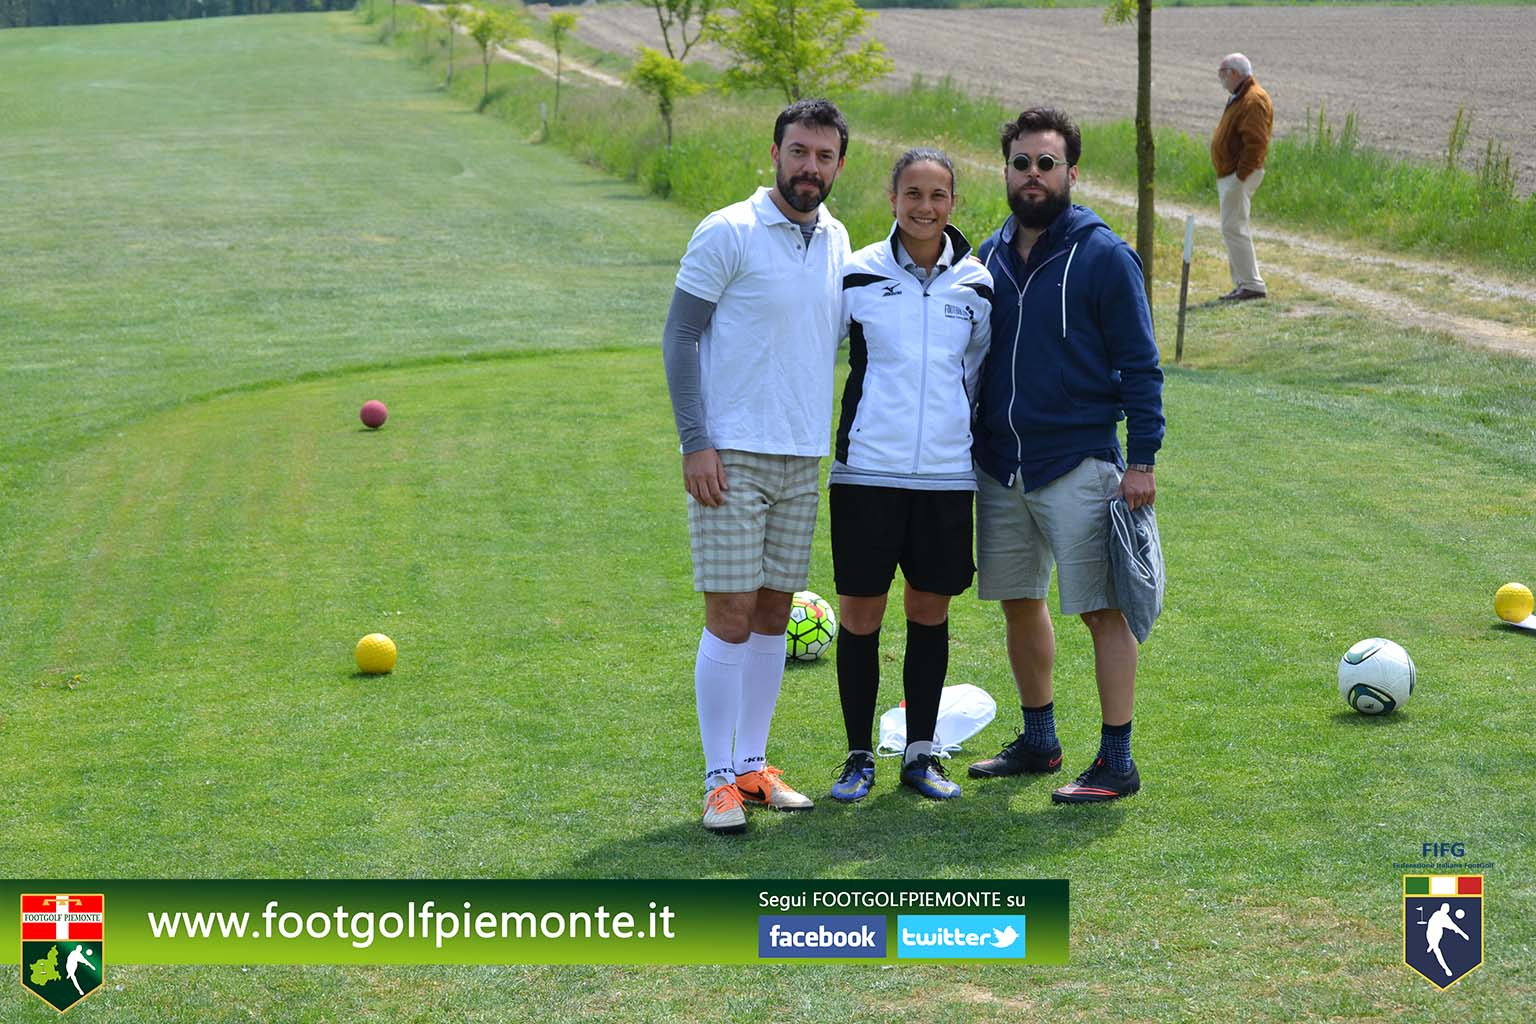 FOTO 9 Regions' Cup Footgolf Piemonte 2016 Golf Città di Asti (At) 30apr16-37